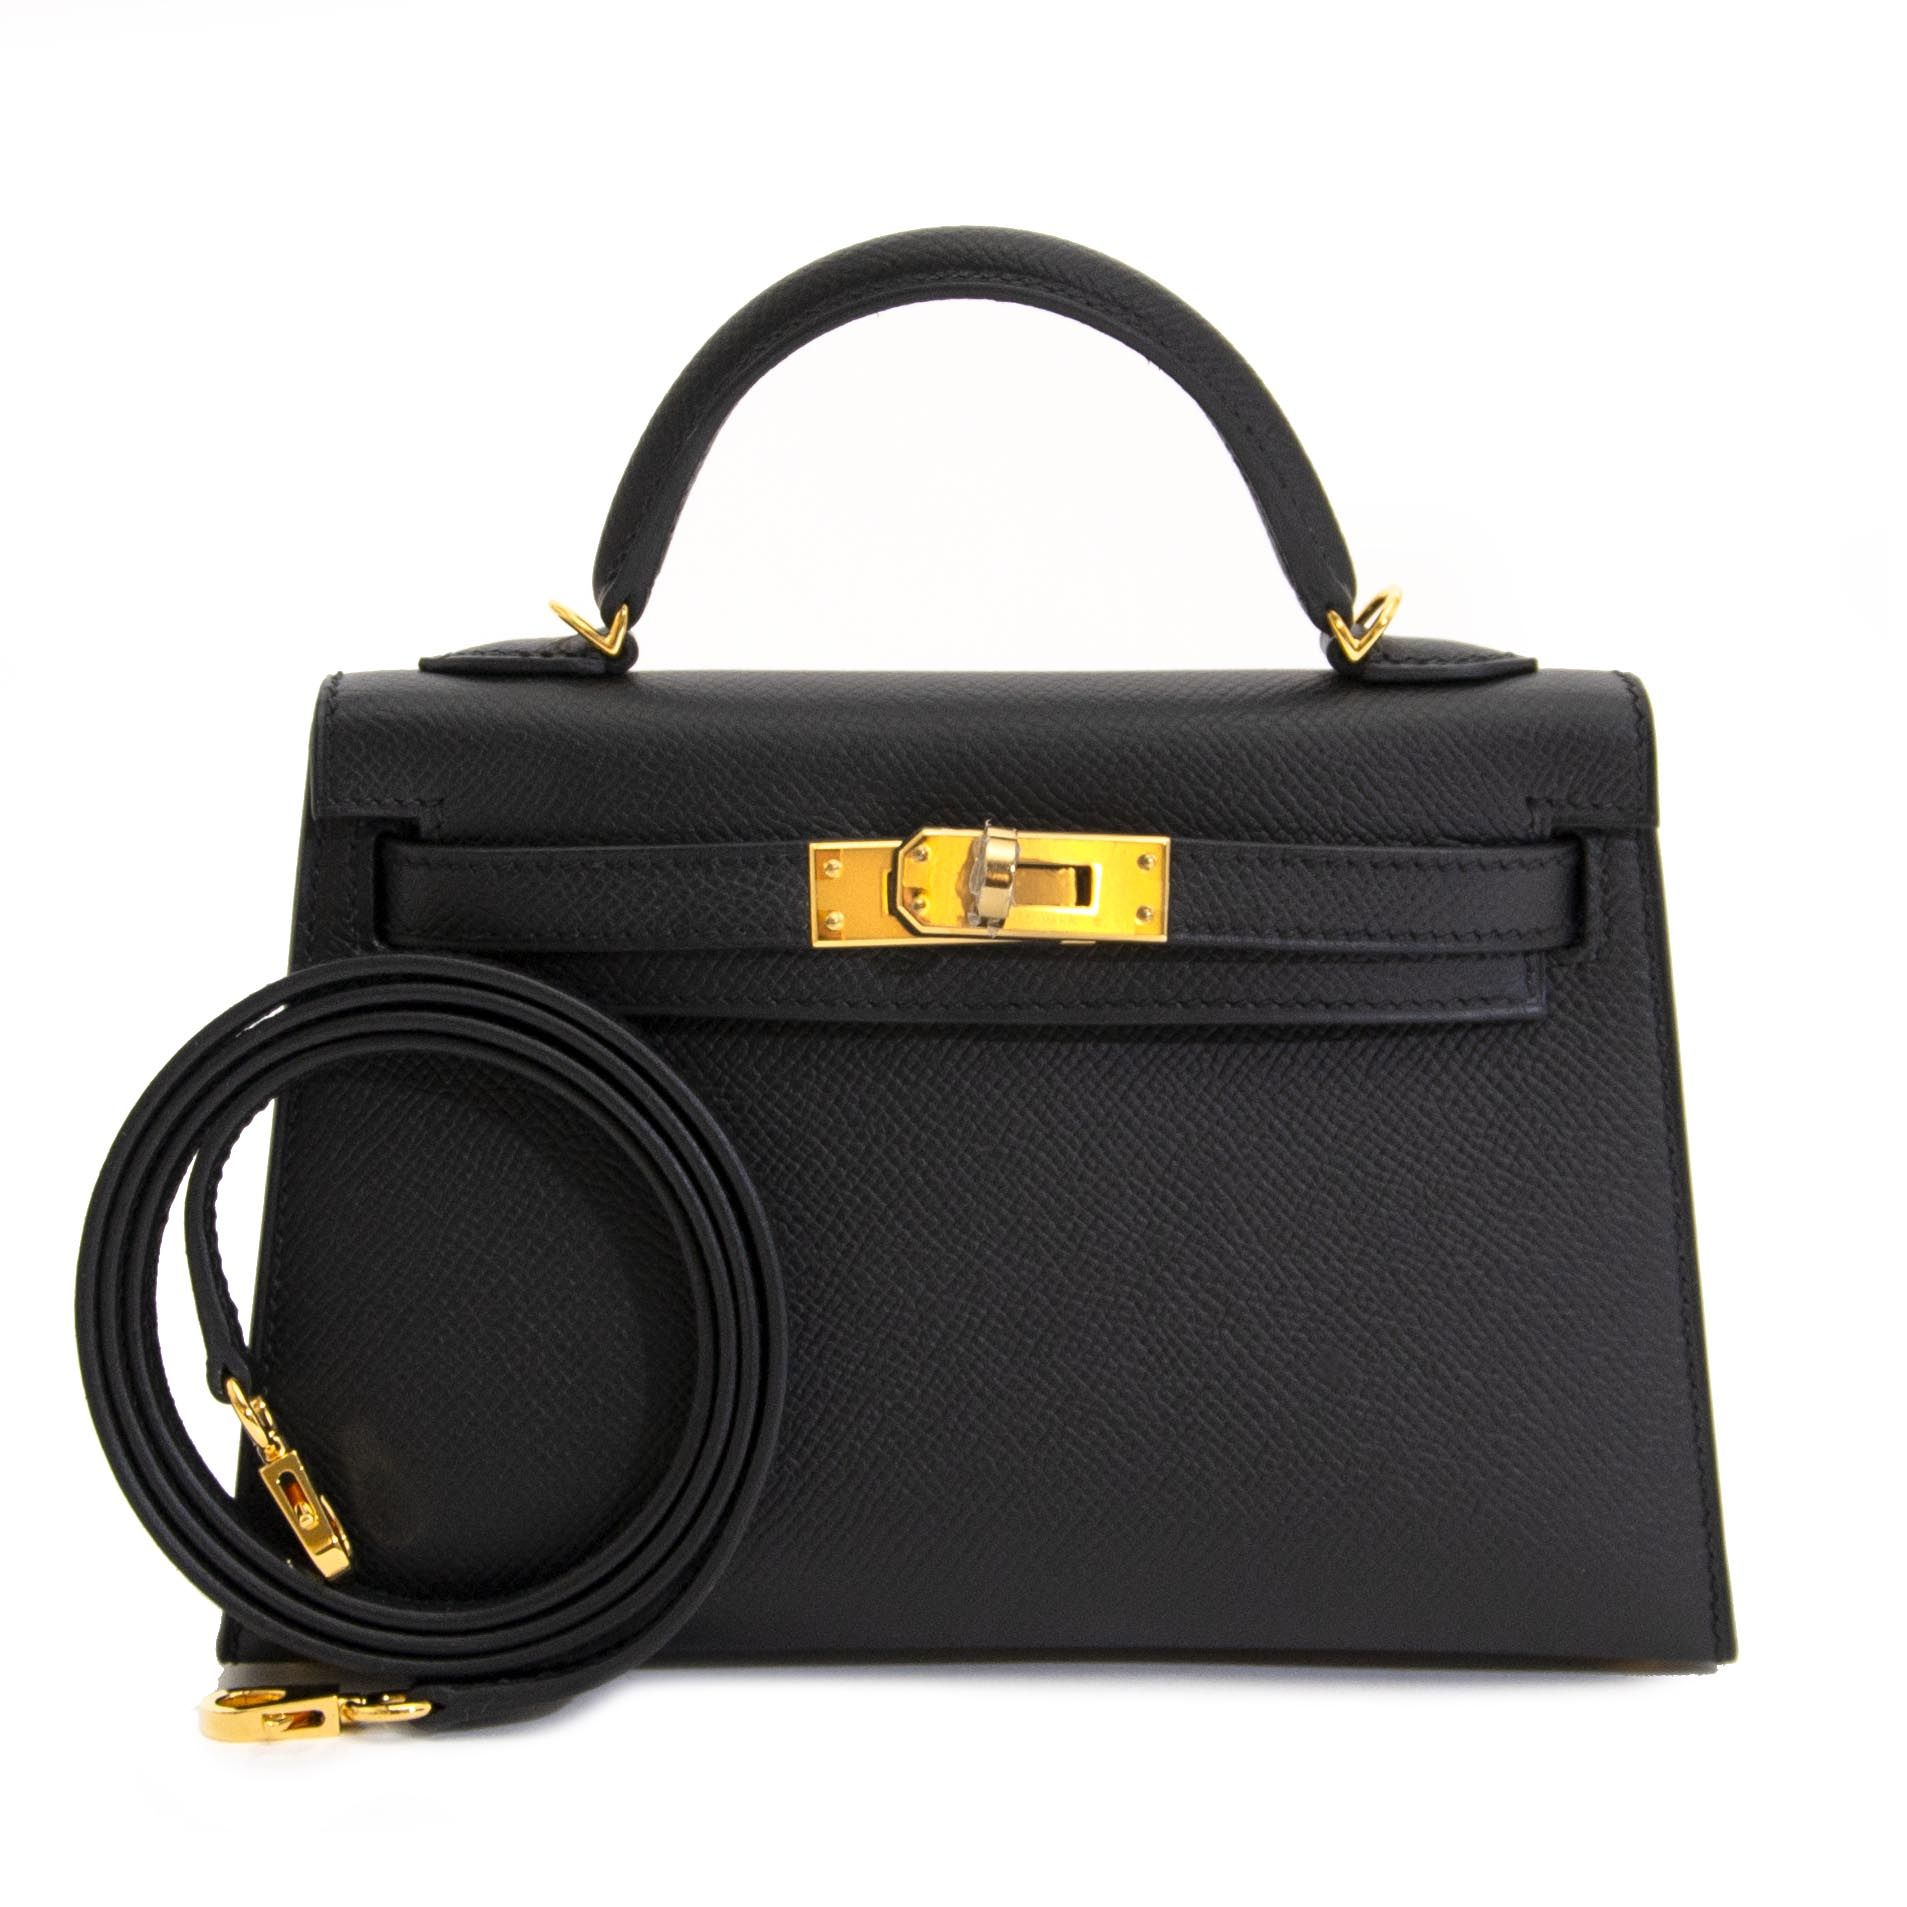 83c9d024497b NEVER USED* Hermes Kelly Mini II 20cm Black Epsom GHW | Shop ...